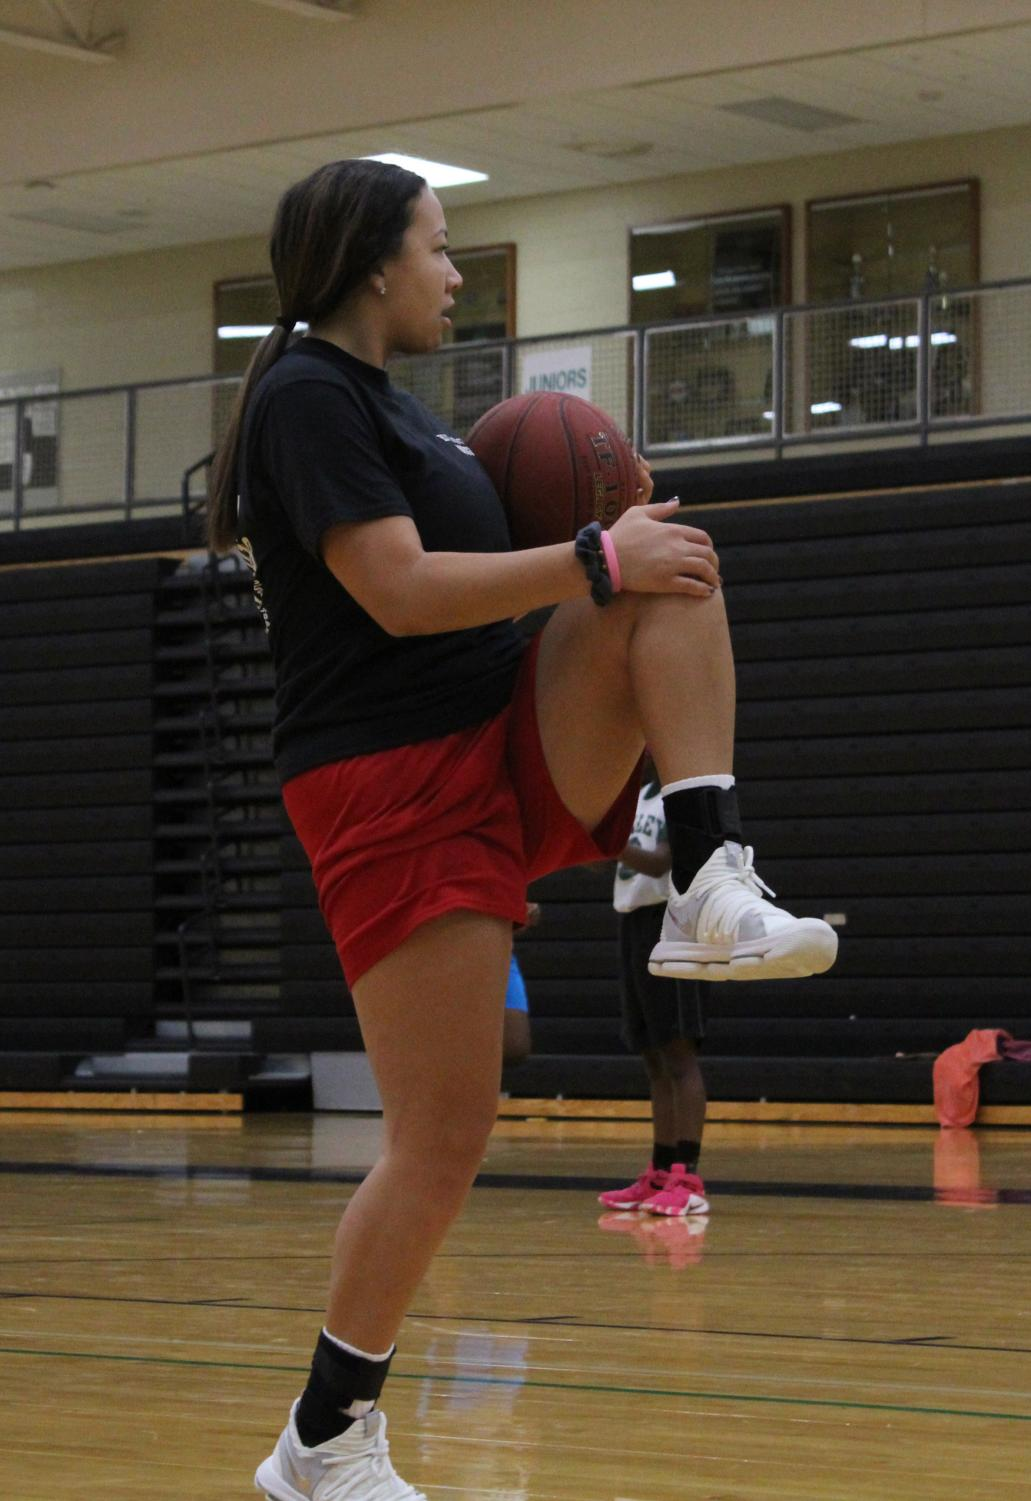 """Warming up for basketball practice Nov. 4, senior Emilyn Richardson is preparing for practice. Joining the team this year, Richardson is eager to get the season started. """"It's going to be a fun and exciting season. Yes, we will have some ups and downs but that's just part of it."""""""